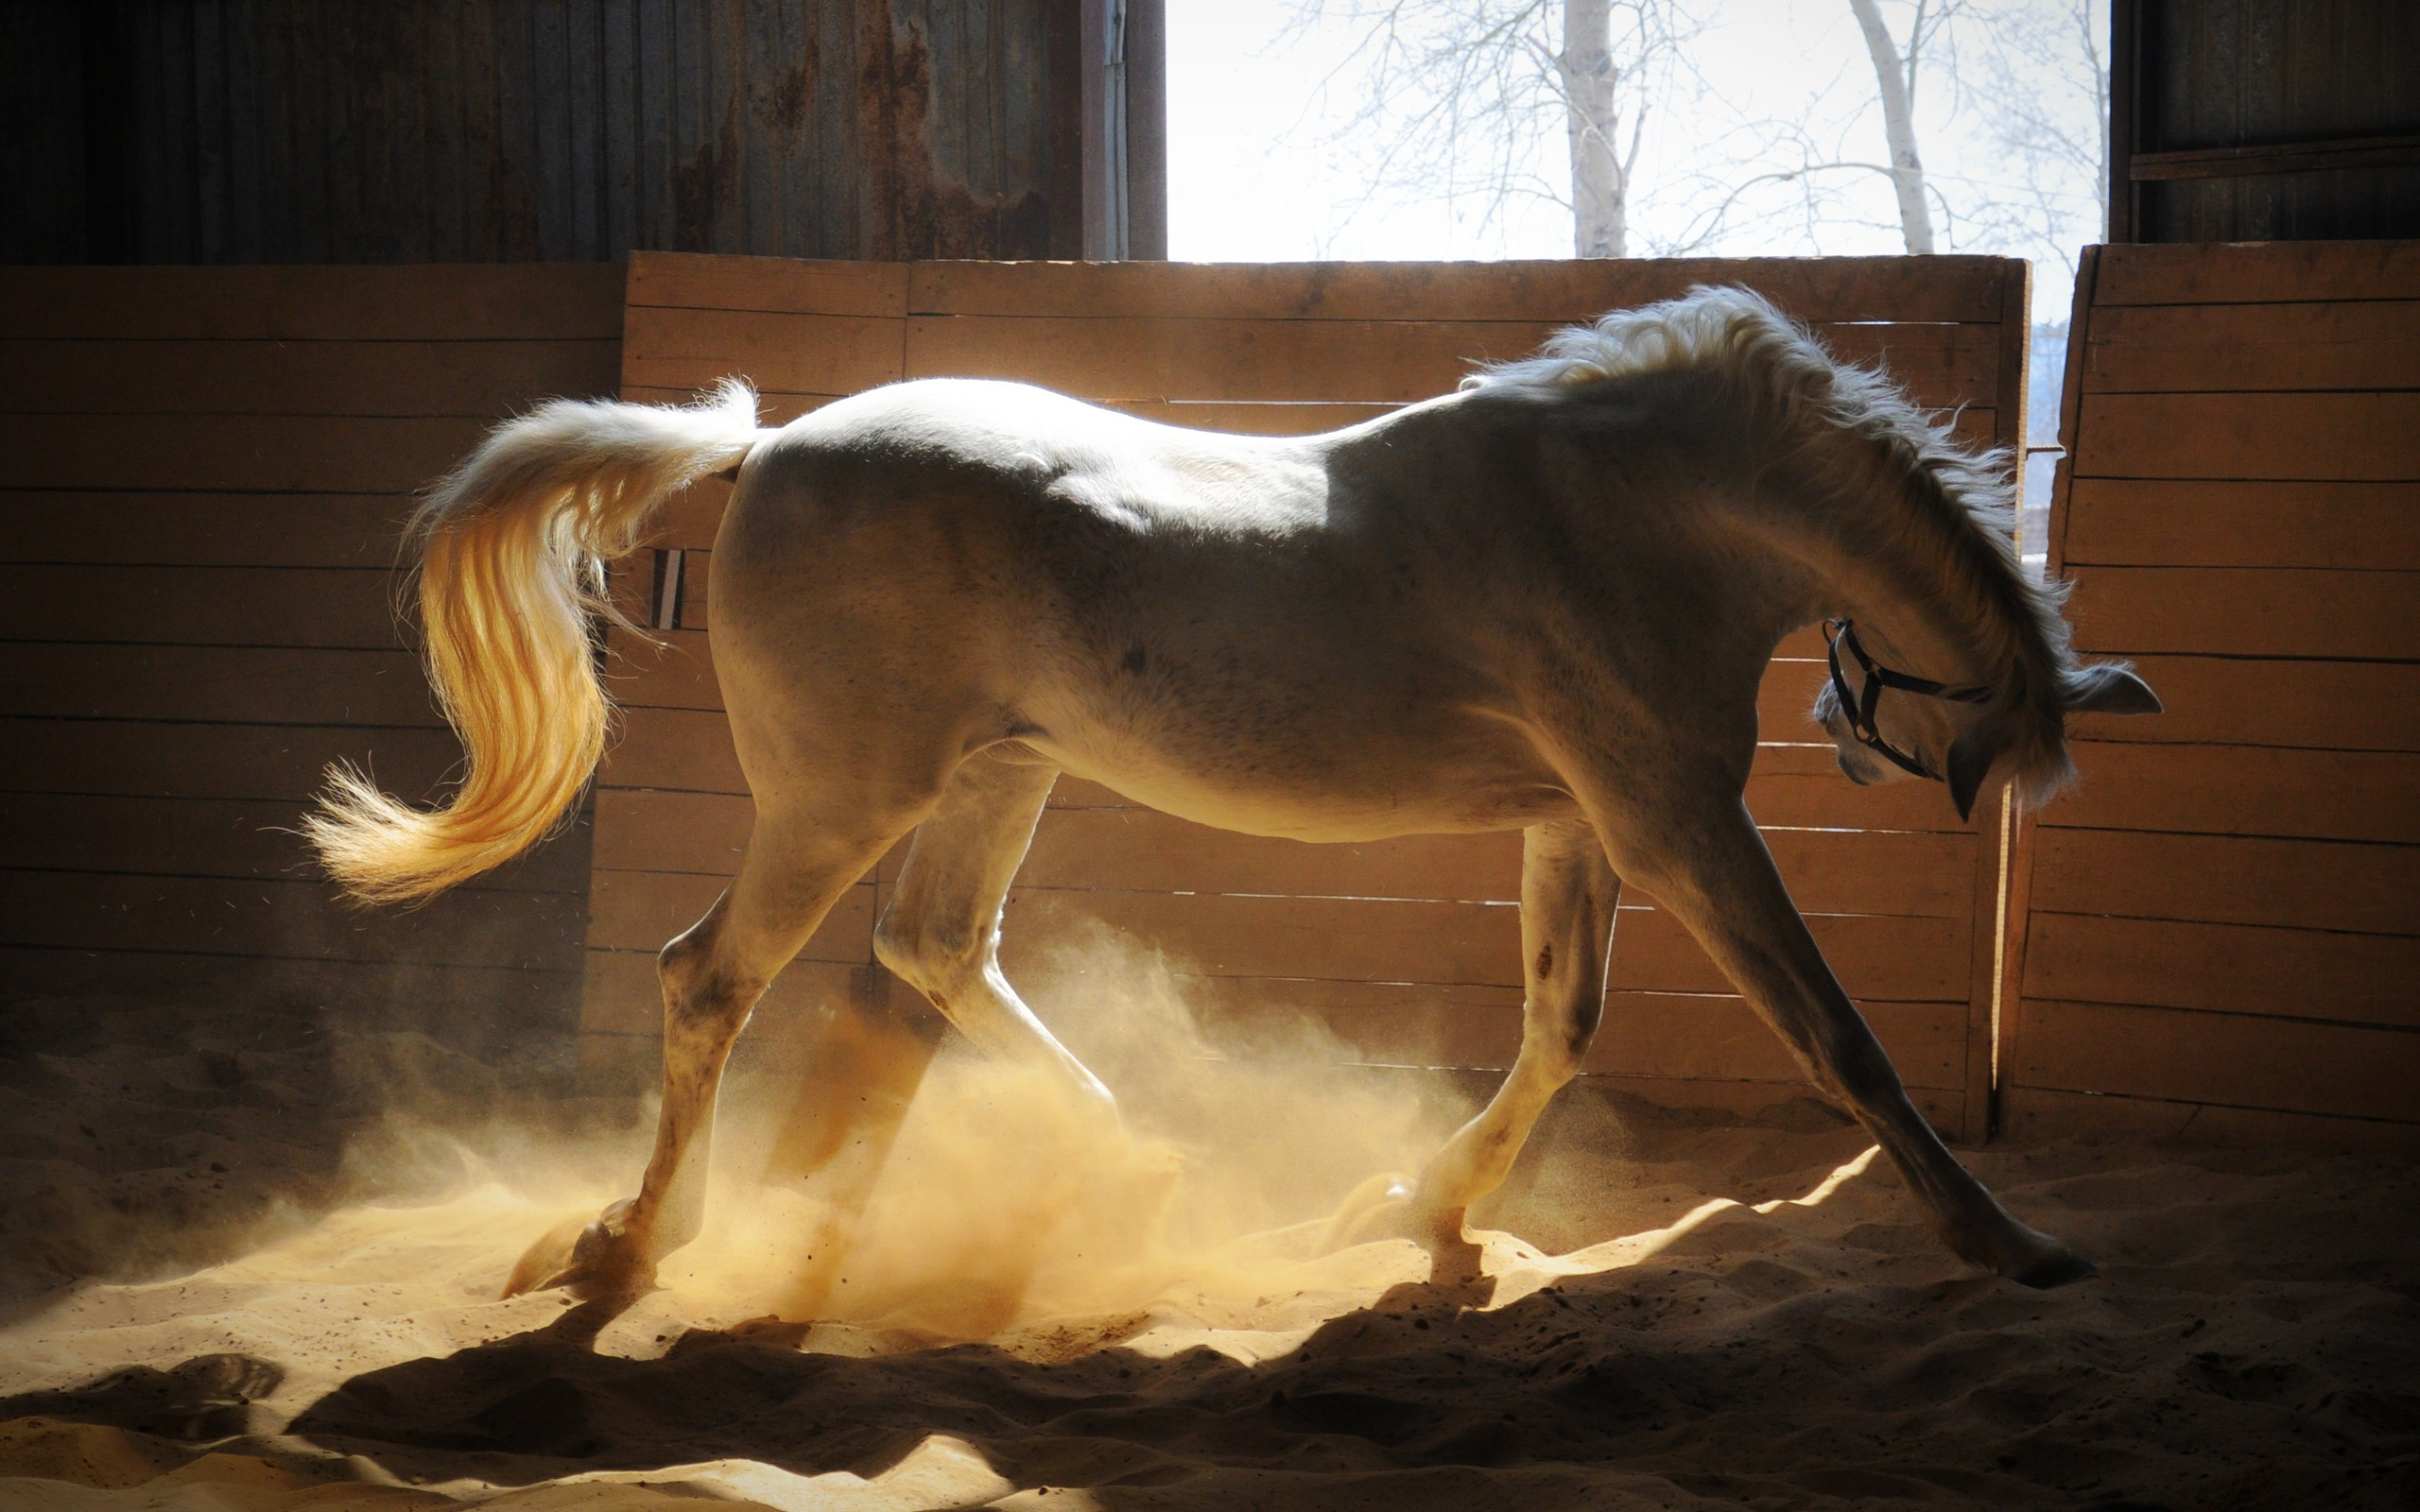 White Horse stable